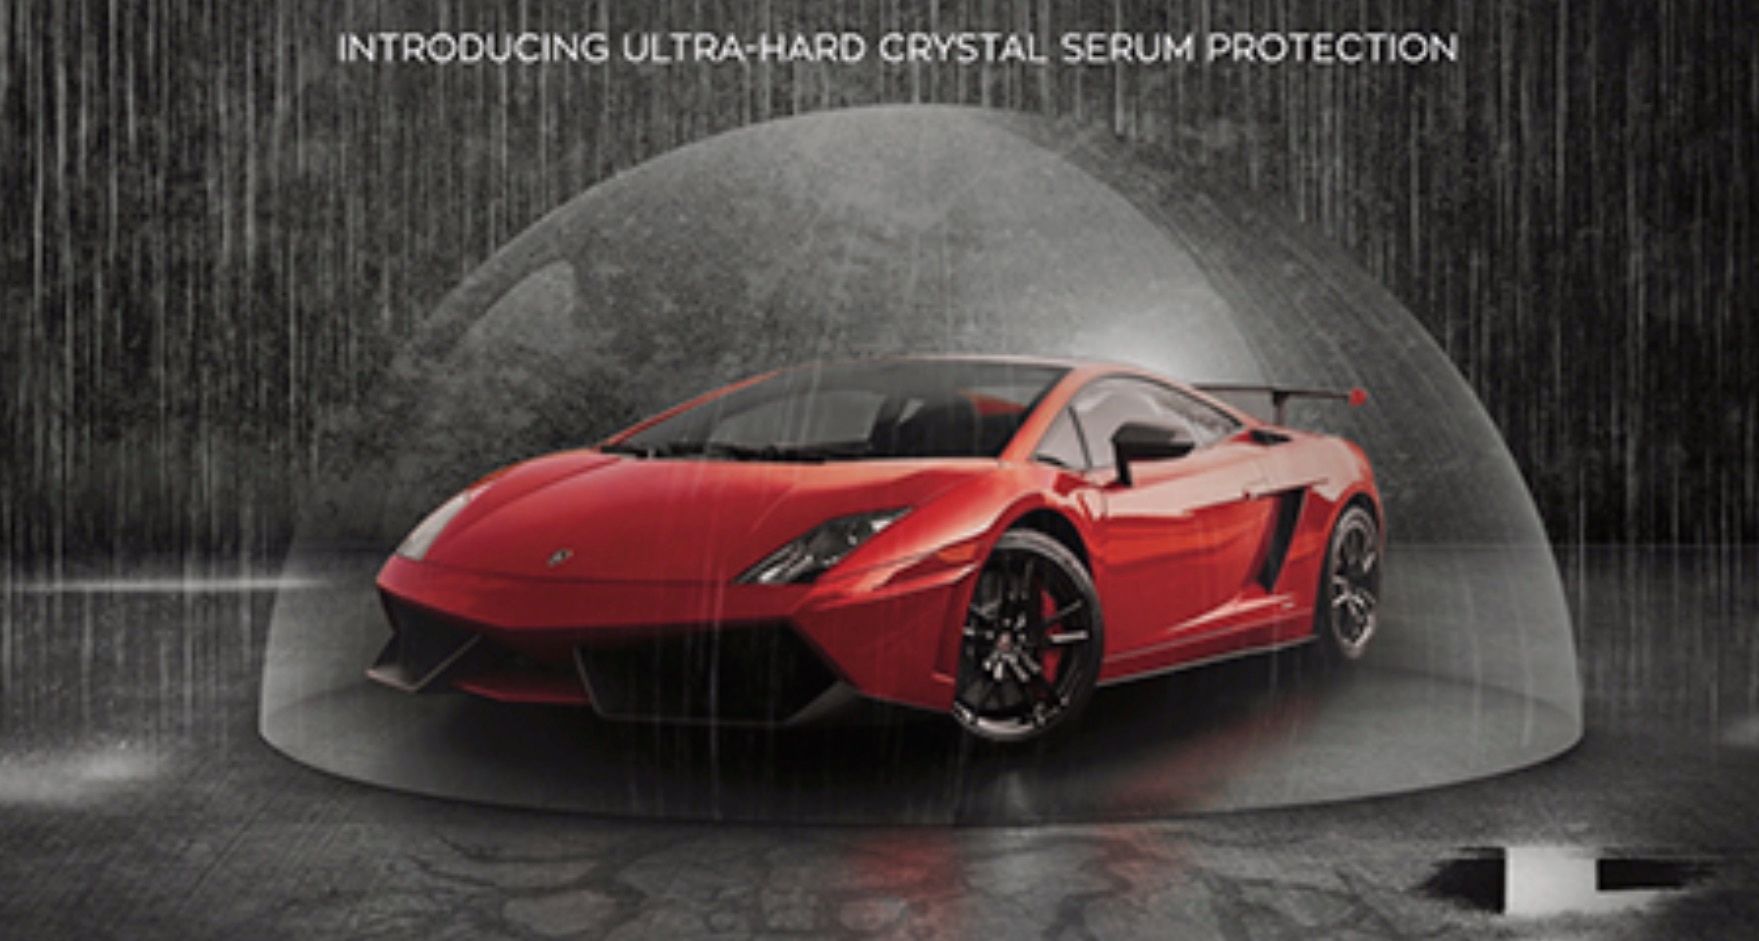 Gtechniq Crystal Serum - Like no other product, Crystal Serum provides paint protection with previously unachievable levels of gloss, durability, scratch and chemical resistance. It's composite structure offers the ultimate in ceramic protection plus the same slick finish and candy like gloss as the very best carnauba waxes.